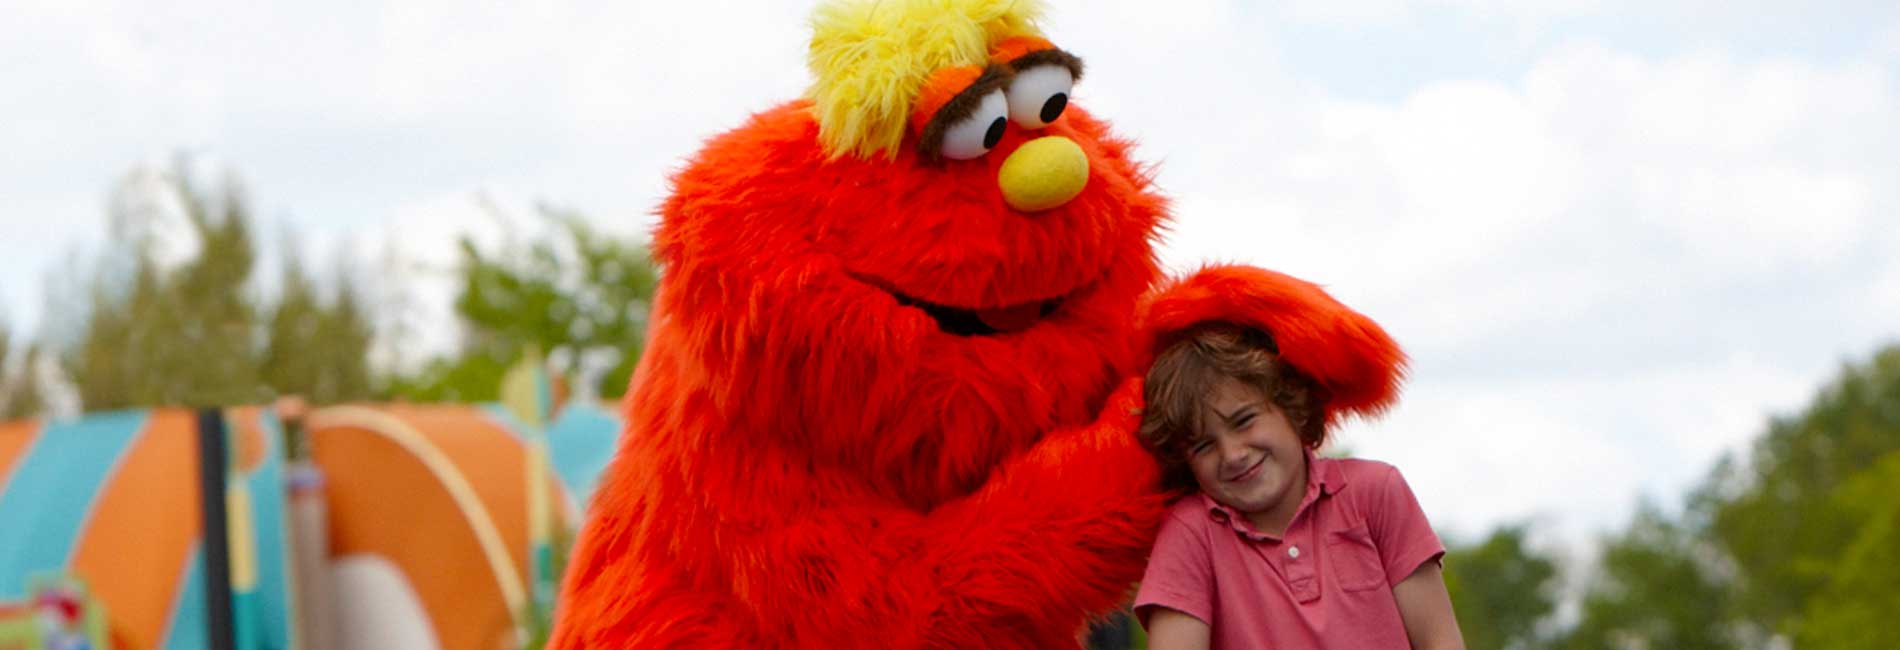 Murray playing with a young boy outside at Sesame Place theme park